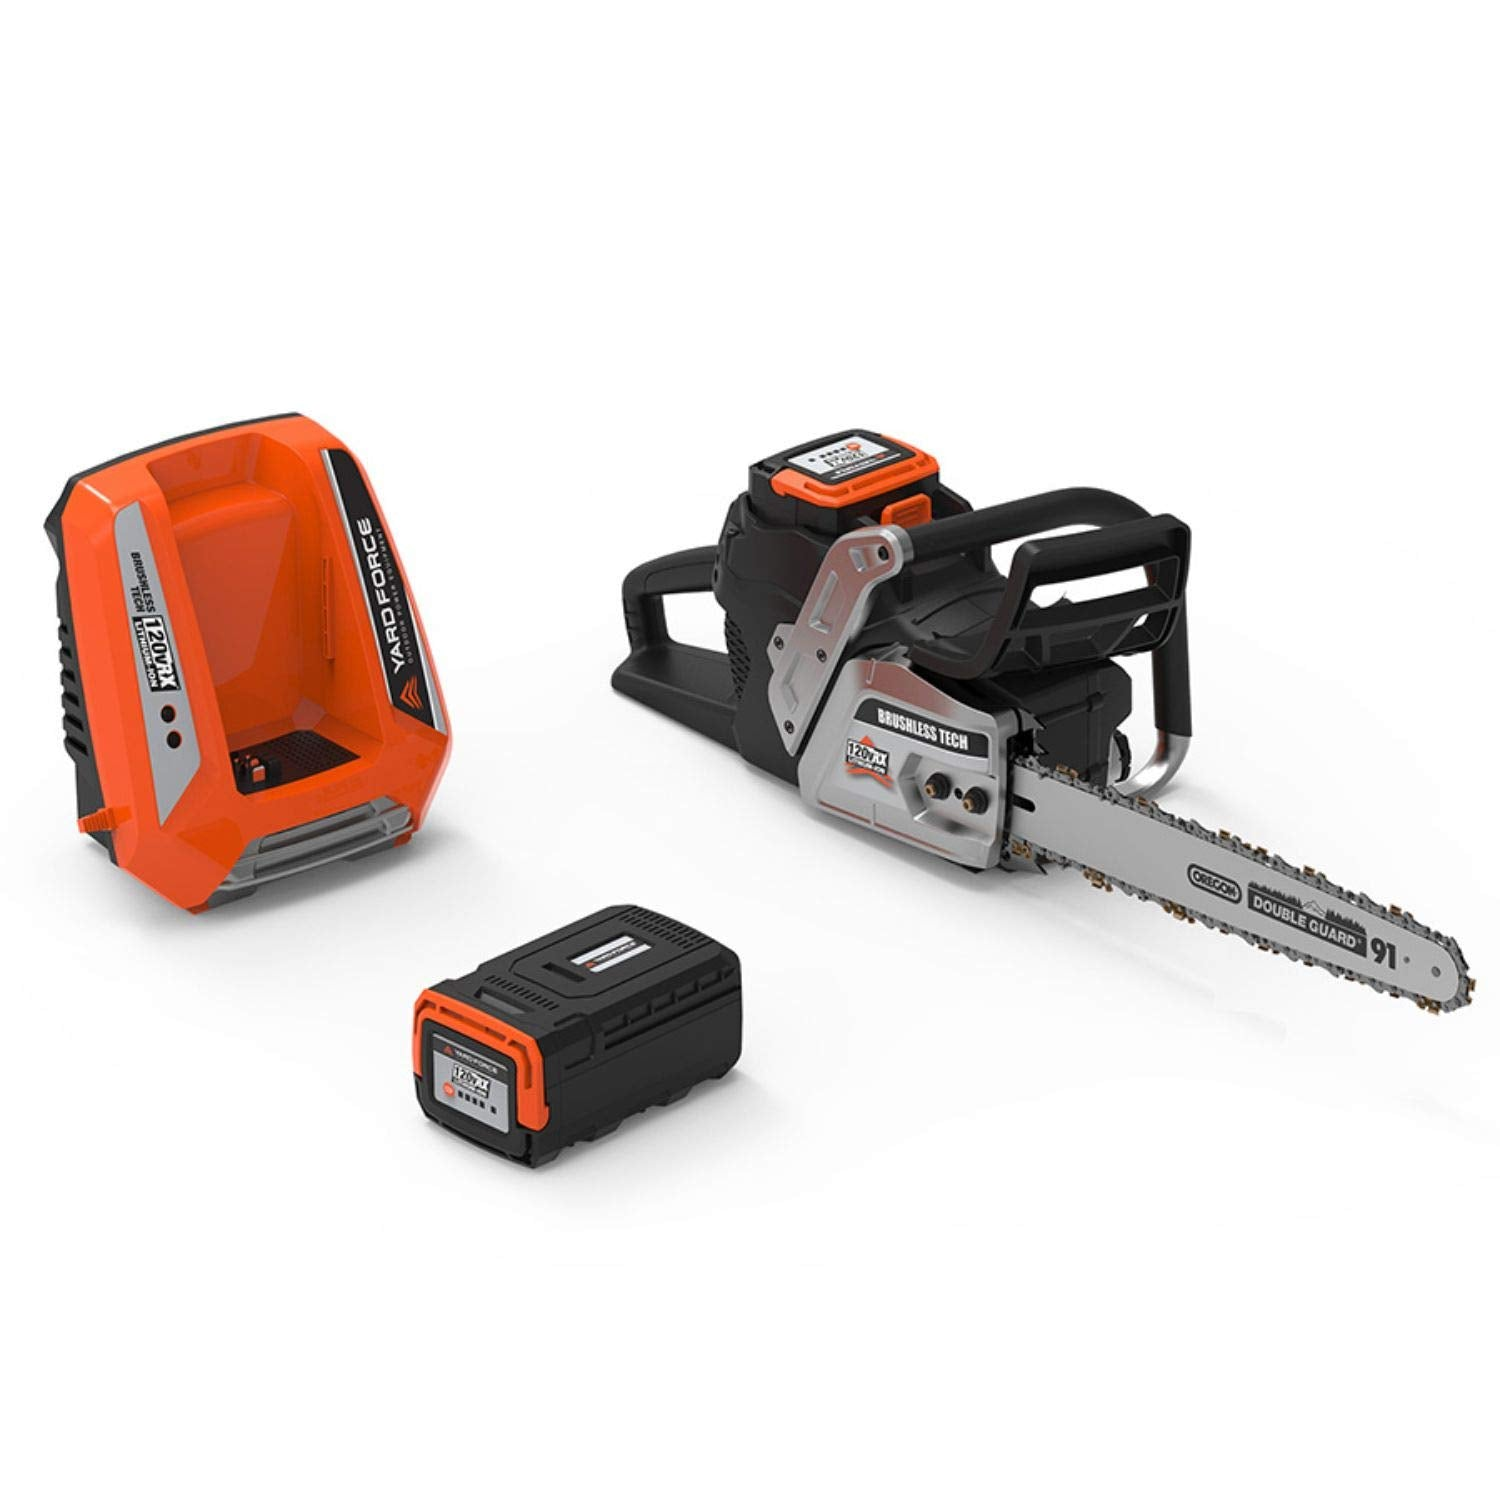 "YARD FORCE YF120vRX 120v Lithium-Ion 18"" Chainsaw with Oregon Bar and Chain-Complete with Battery and Fast Charger Included"